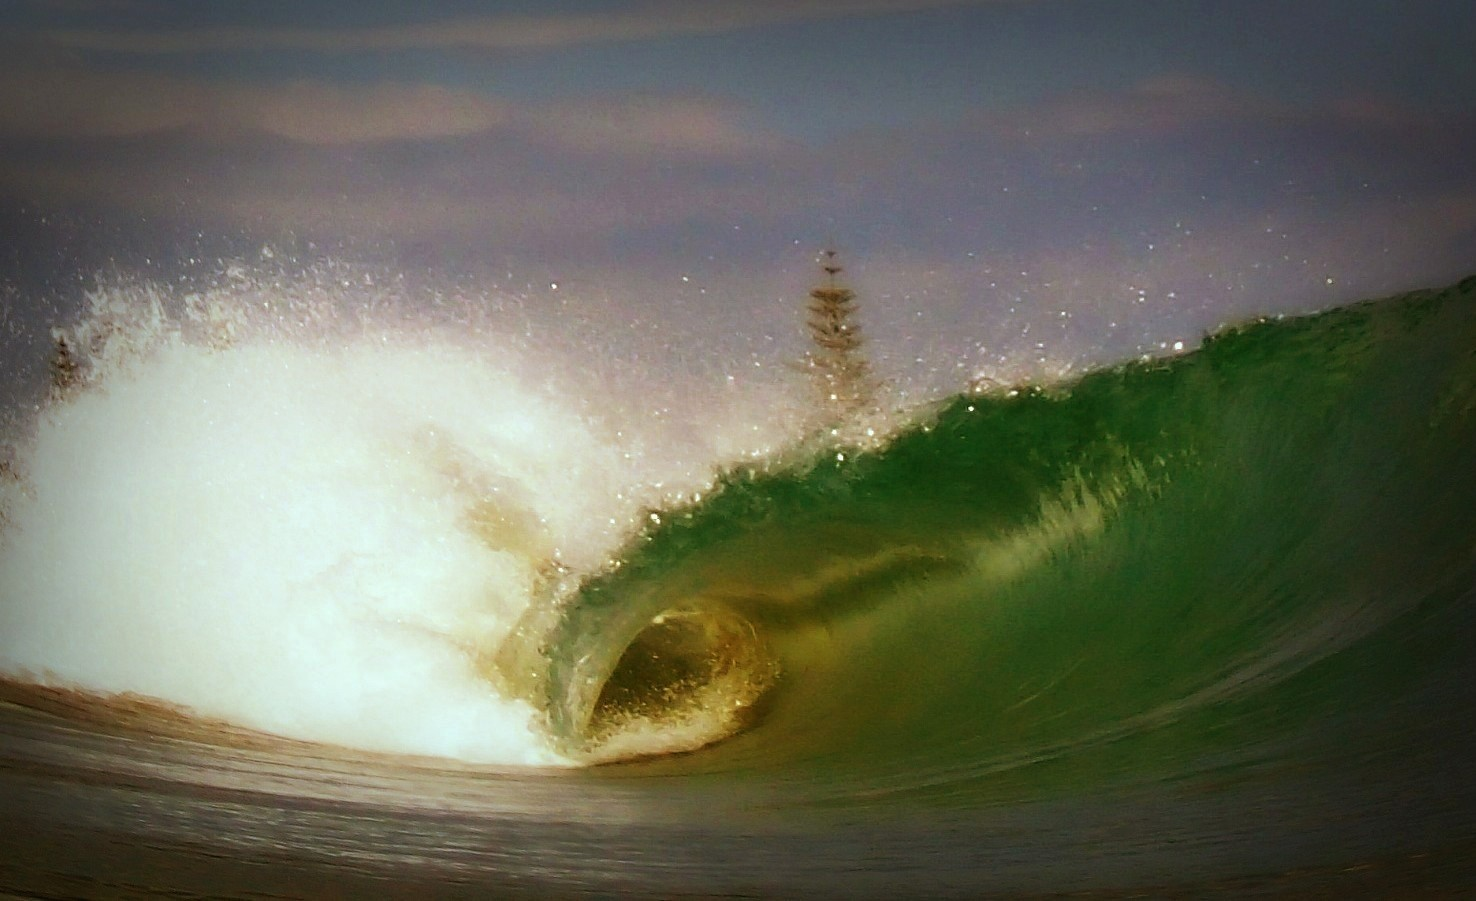 Tigerwould's photo of Gizzy Pipe (Gisborne)